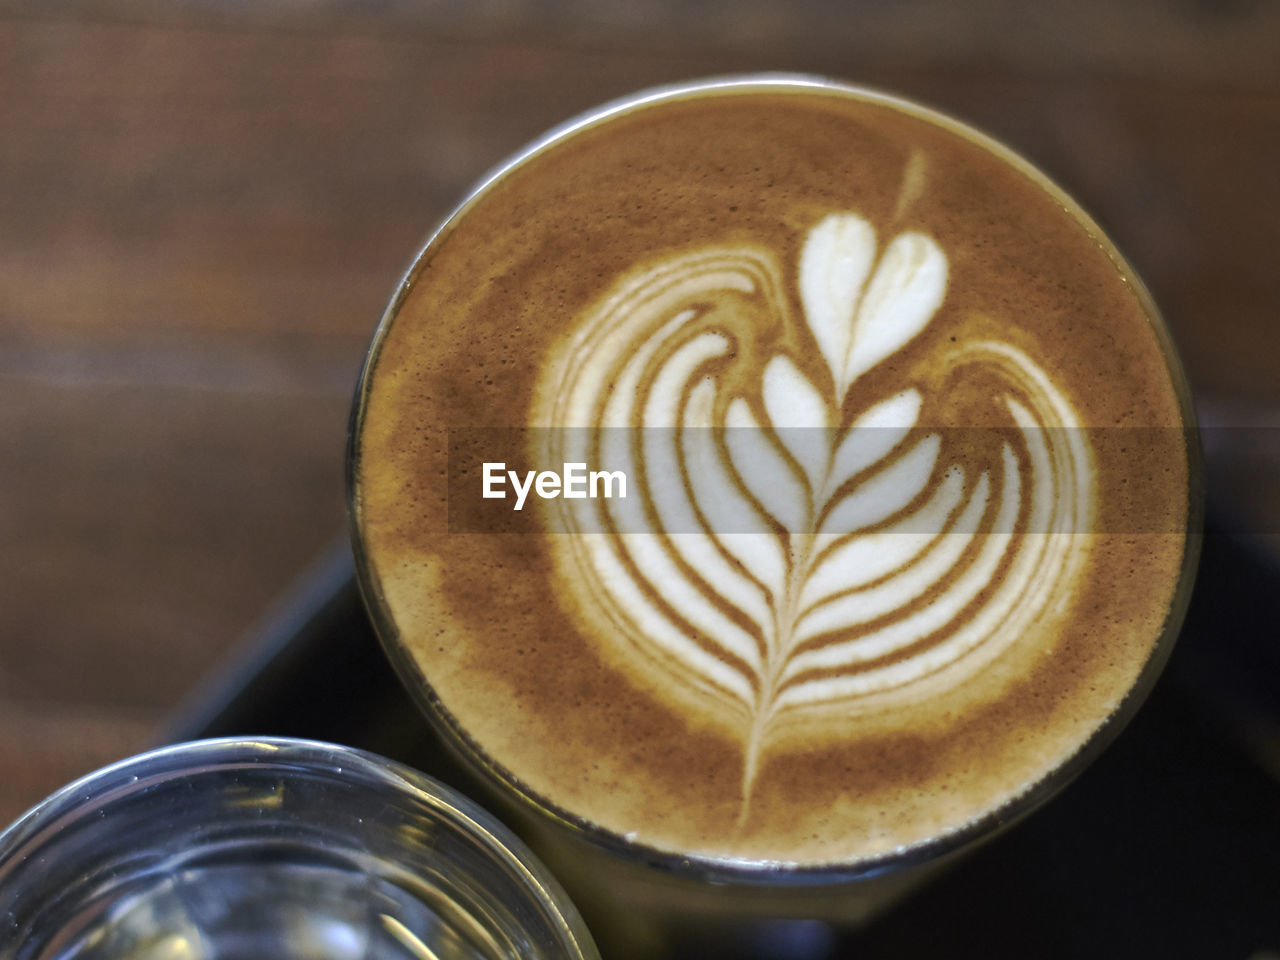 coffee - drink, food and drink, drink, refreshment, coffee cup, coffee, frothy drink, mug, hot drink, still life, cup, froth art, cappuccino, close-up, creativity, freshness, indoors, table, focus on foreground, latte, no people, crockery, non-alcoholic beverage, froth